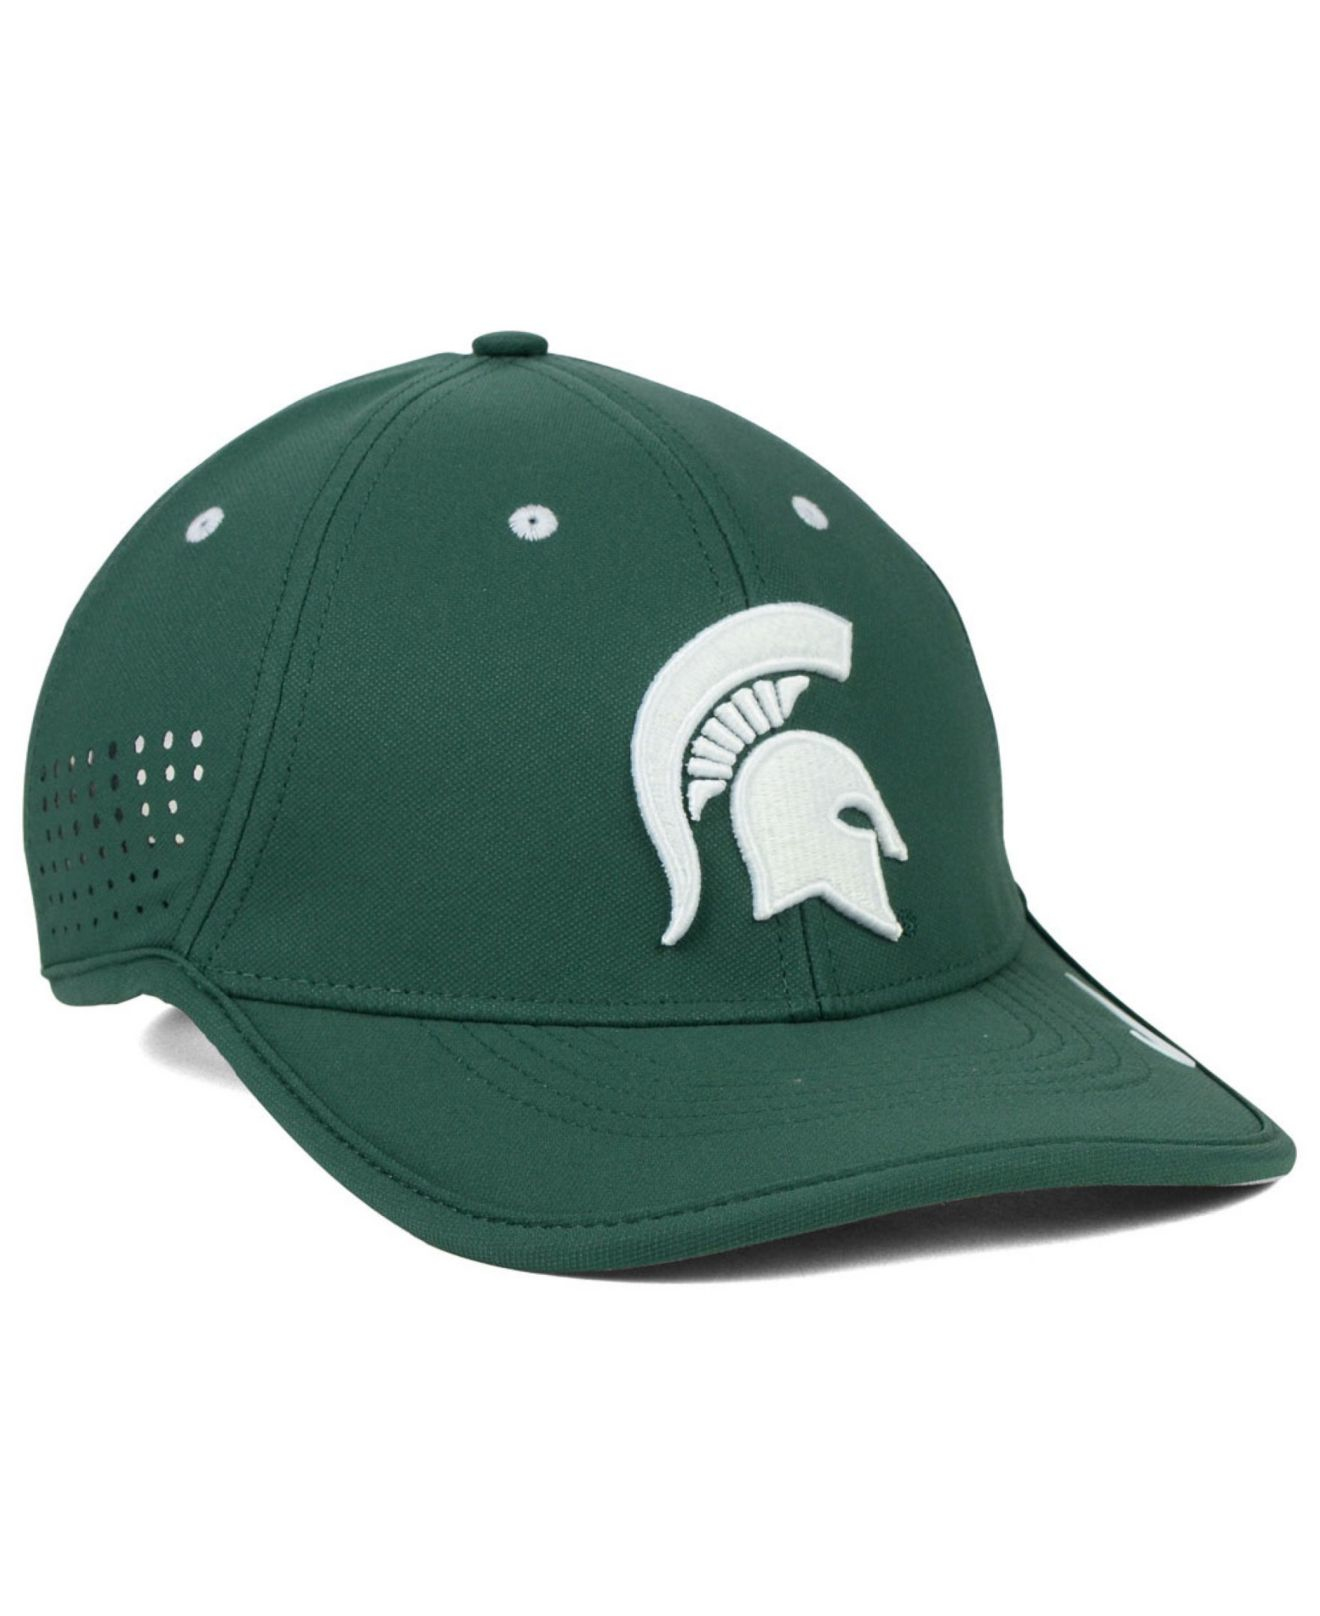 sports shoes 31088 4c7d1 ... where can i buy lyst nike michigan state spartans dri fit coaches cap  in green for